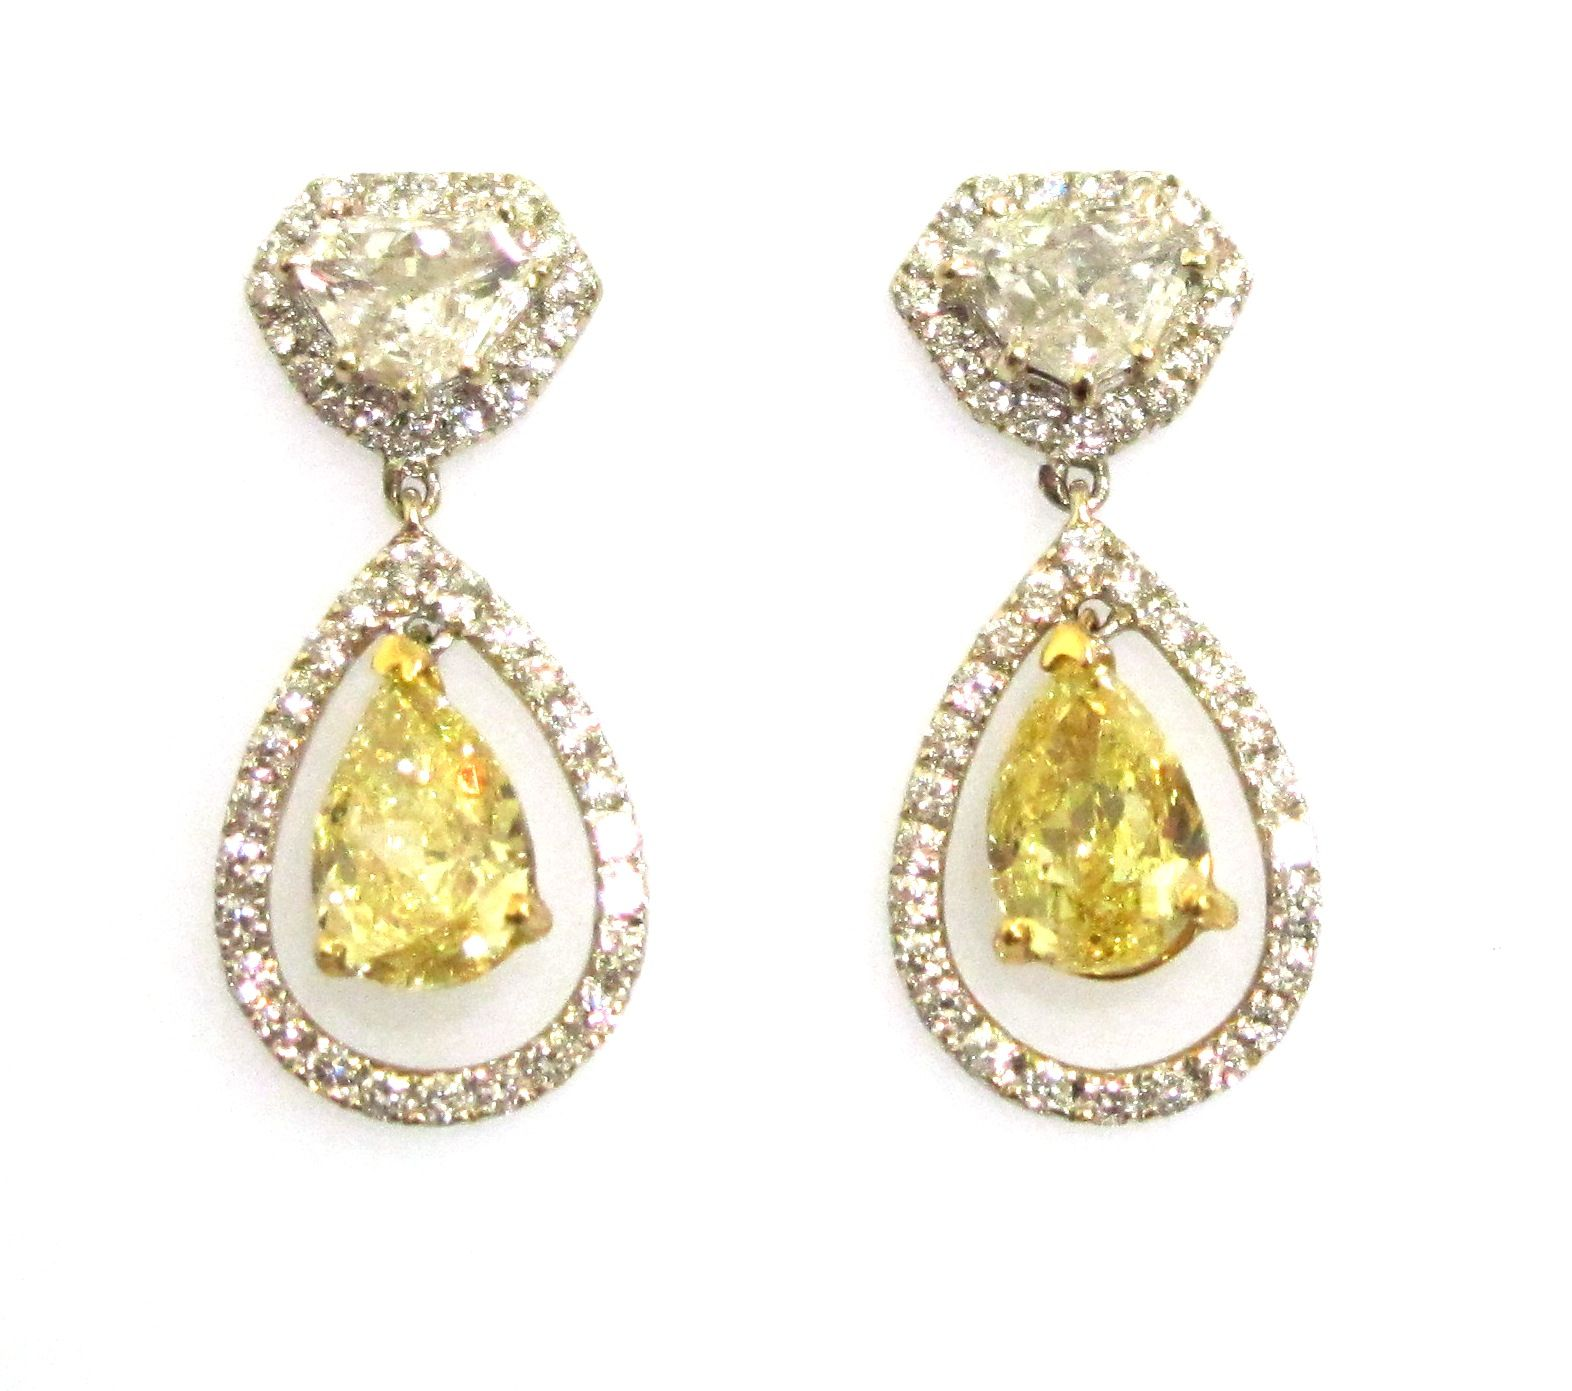 Yellow Diamond Drop Earrings To Match My Engagement Ring Lol